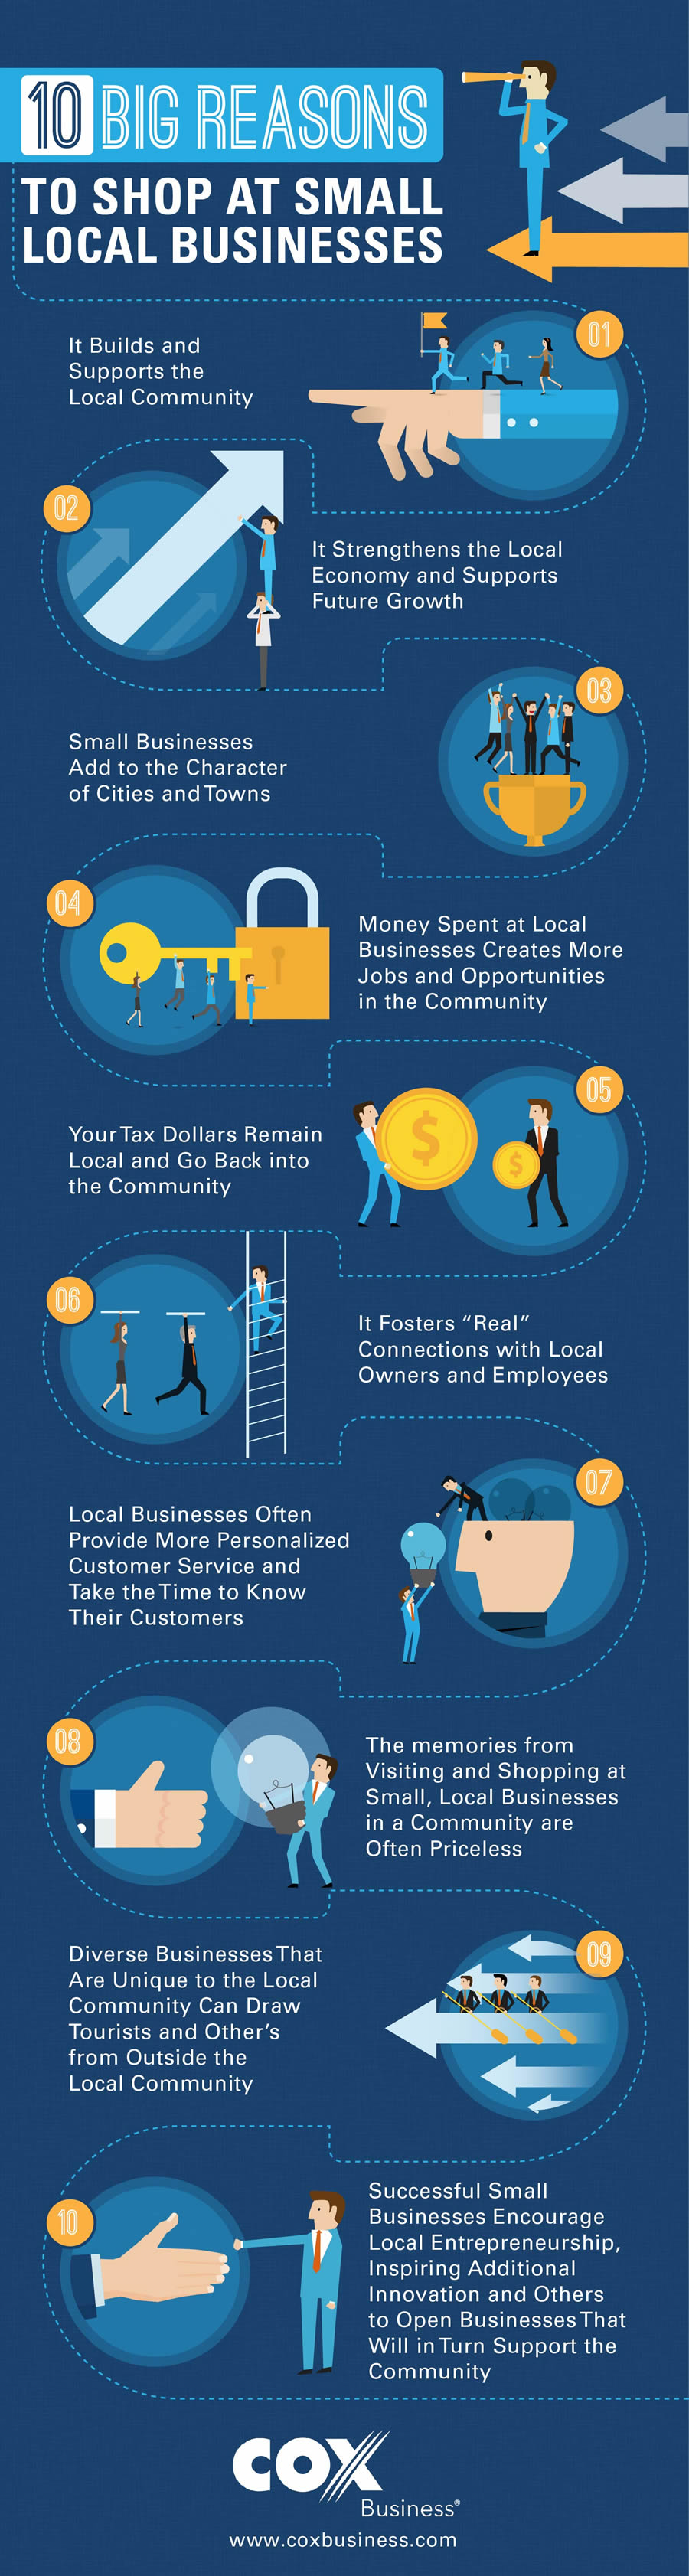 10 Big Reasons to Shop At Small Local Businesses Infographic.jpg